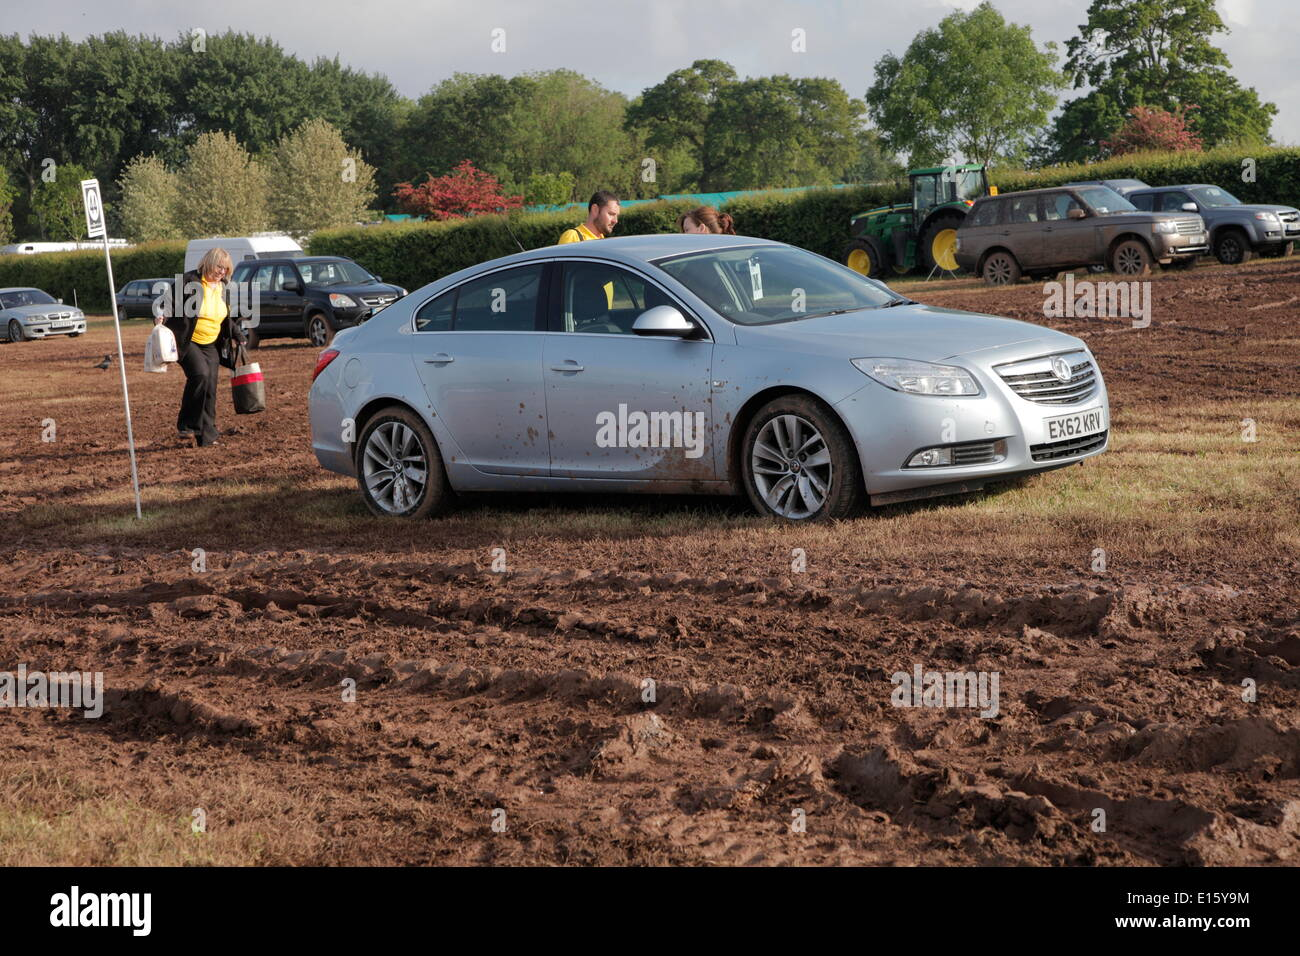 Exeter, Devon, UK. 23rd May, 2014. Devon County Show cancelled because of safety concerns due to heavy rain. The Stock Photo